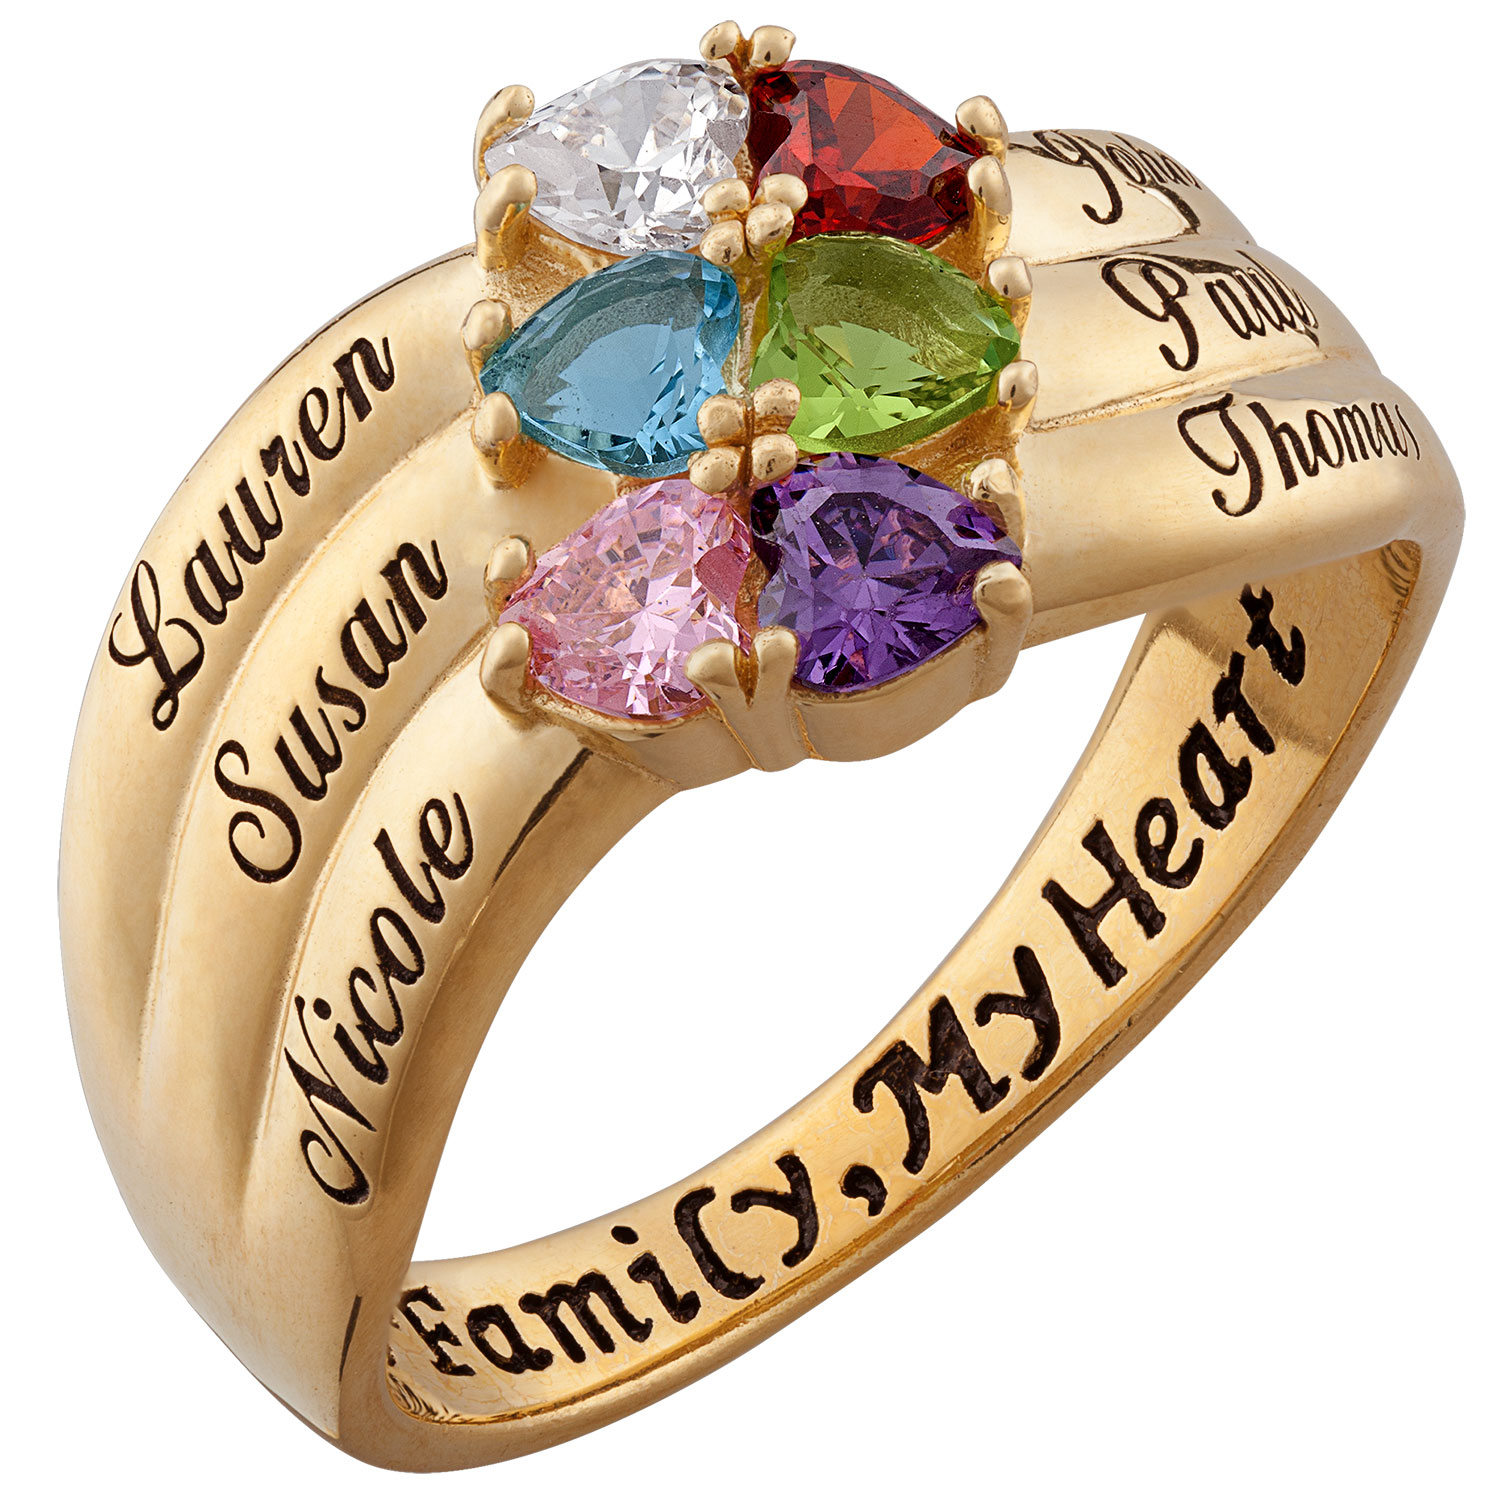 Zales Mothers Heart-Shaped Simulated Birthstone Ring in Sterling Silver with 18K Gold Plate (2-6 Stones and Names) EZRkNFA